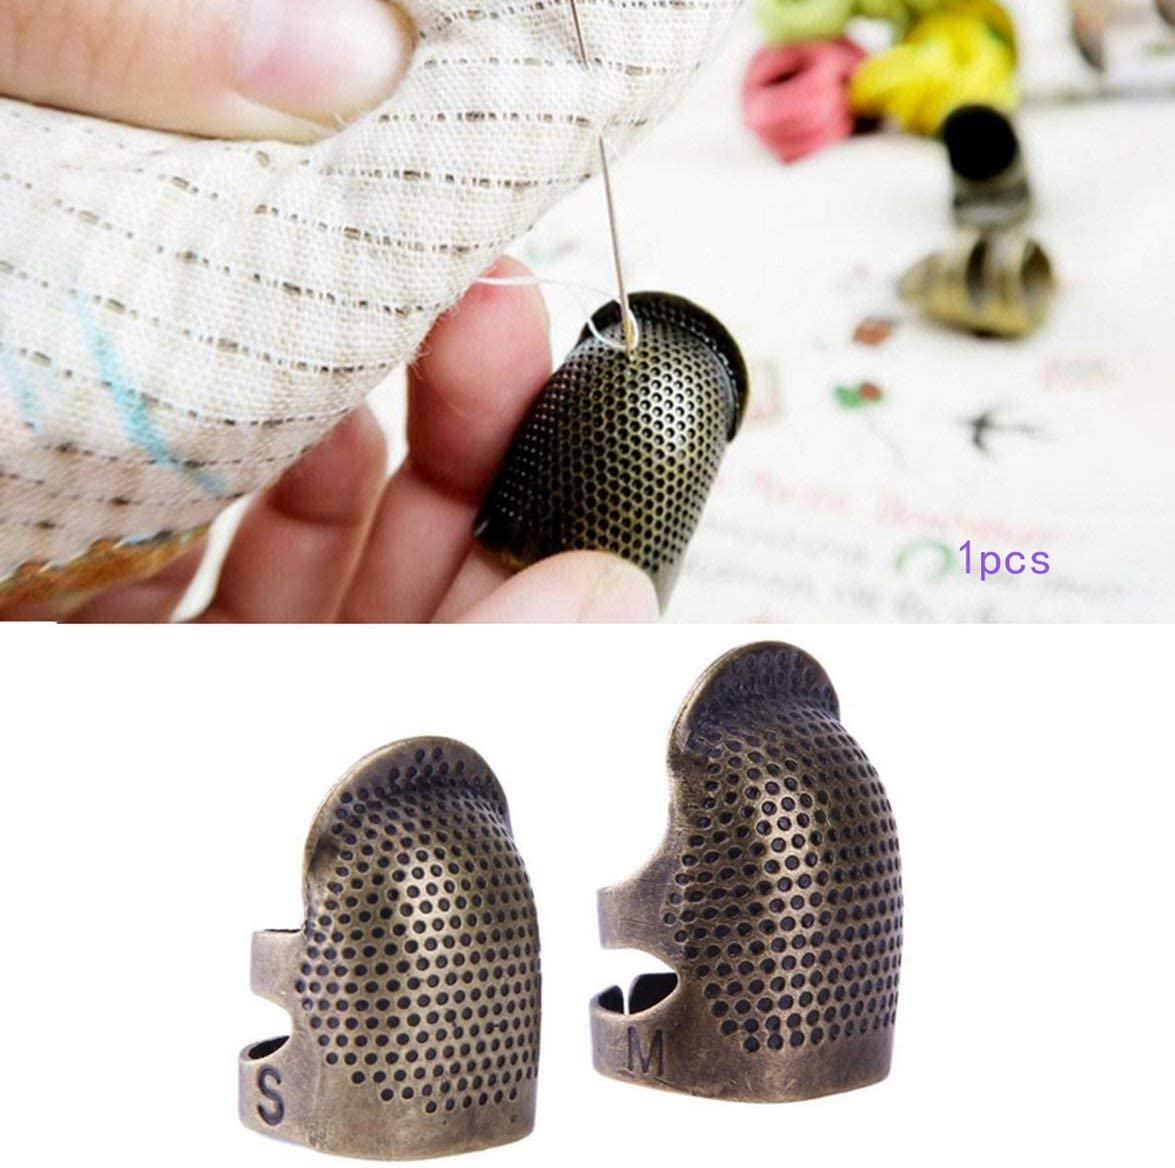 Adjustable Thimble Household Sewing Embroidery Threading Hoop Thimble Protection Non-Slip Ring Finger Sleeve Retro Thimbles